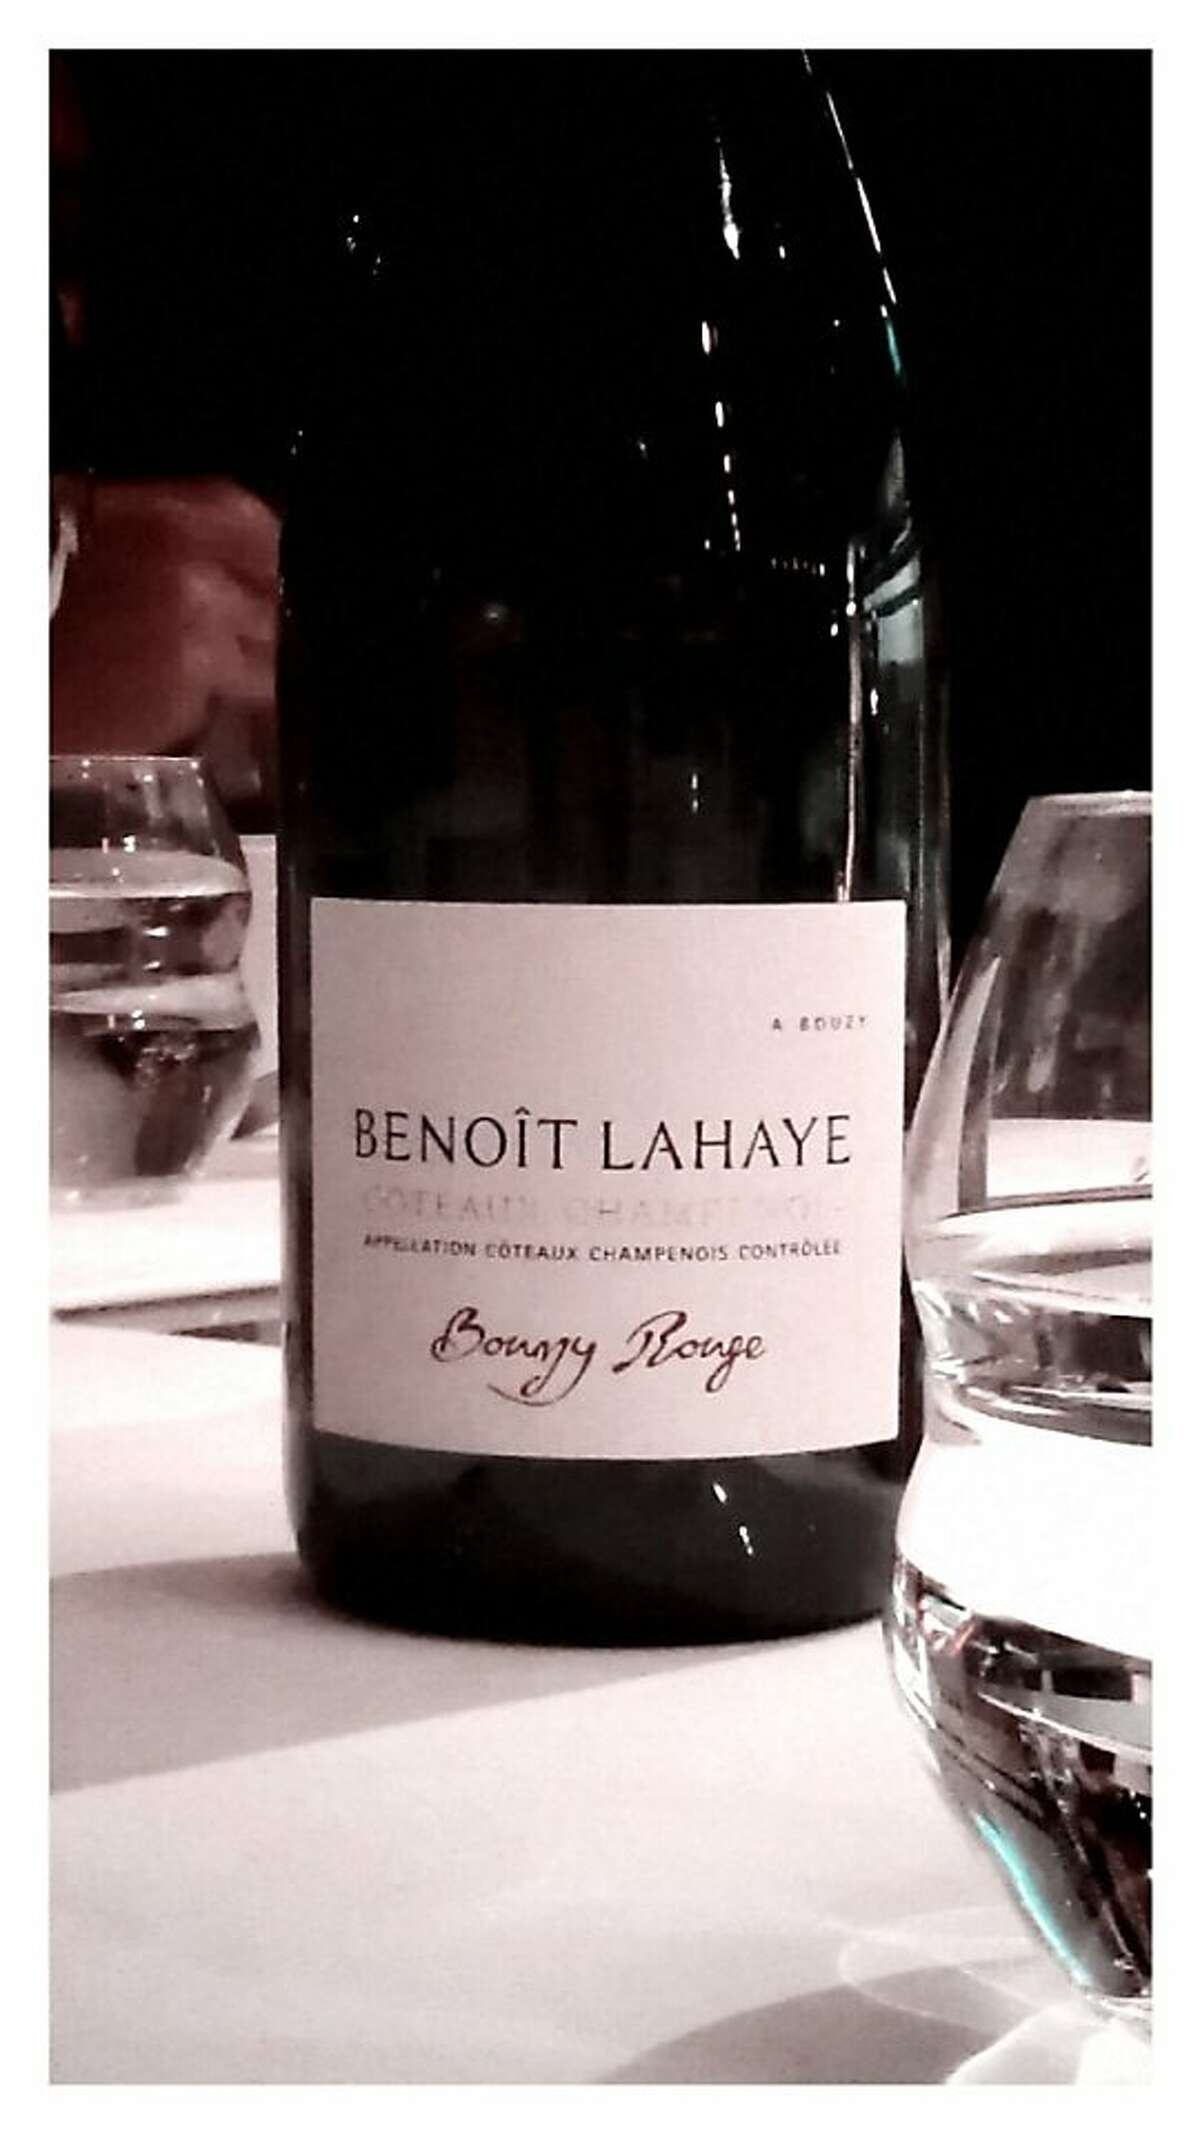 A bottle of 2009 Benoit Lahaye Coteaux Champenois Rouge, one of the bottles for Jon Bonne's Top 10 of 2013, served at a dinner in London.